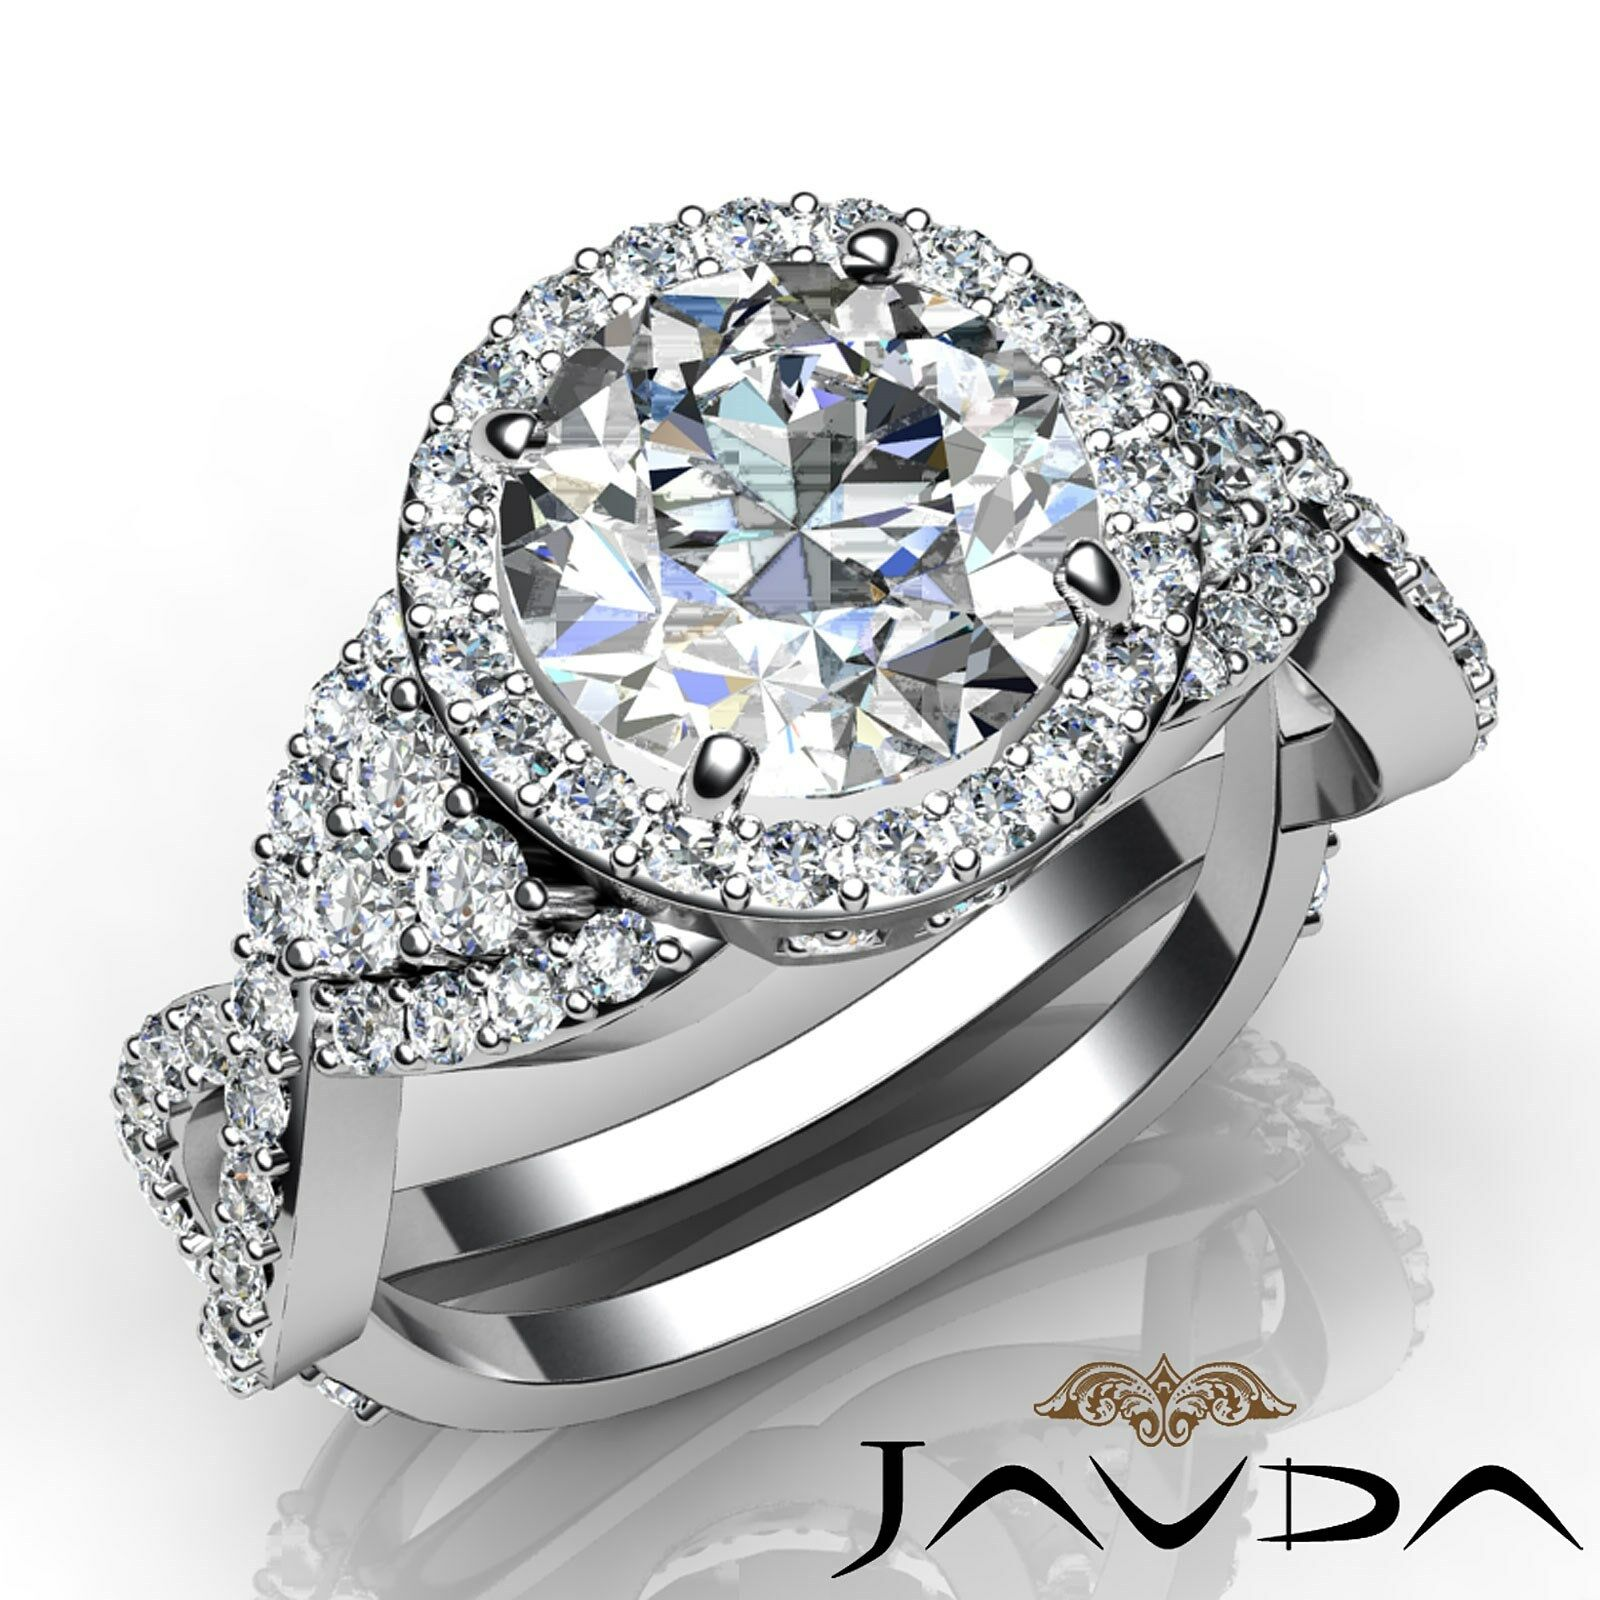 Cross Shank Halo Pave Round Diamond Engagement Ring GIA Certified F VS2 3.16 Ct